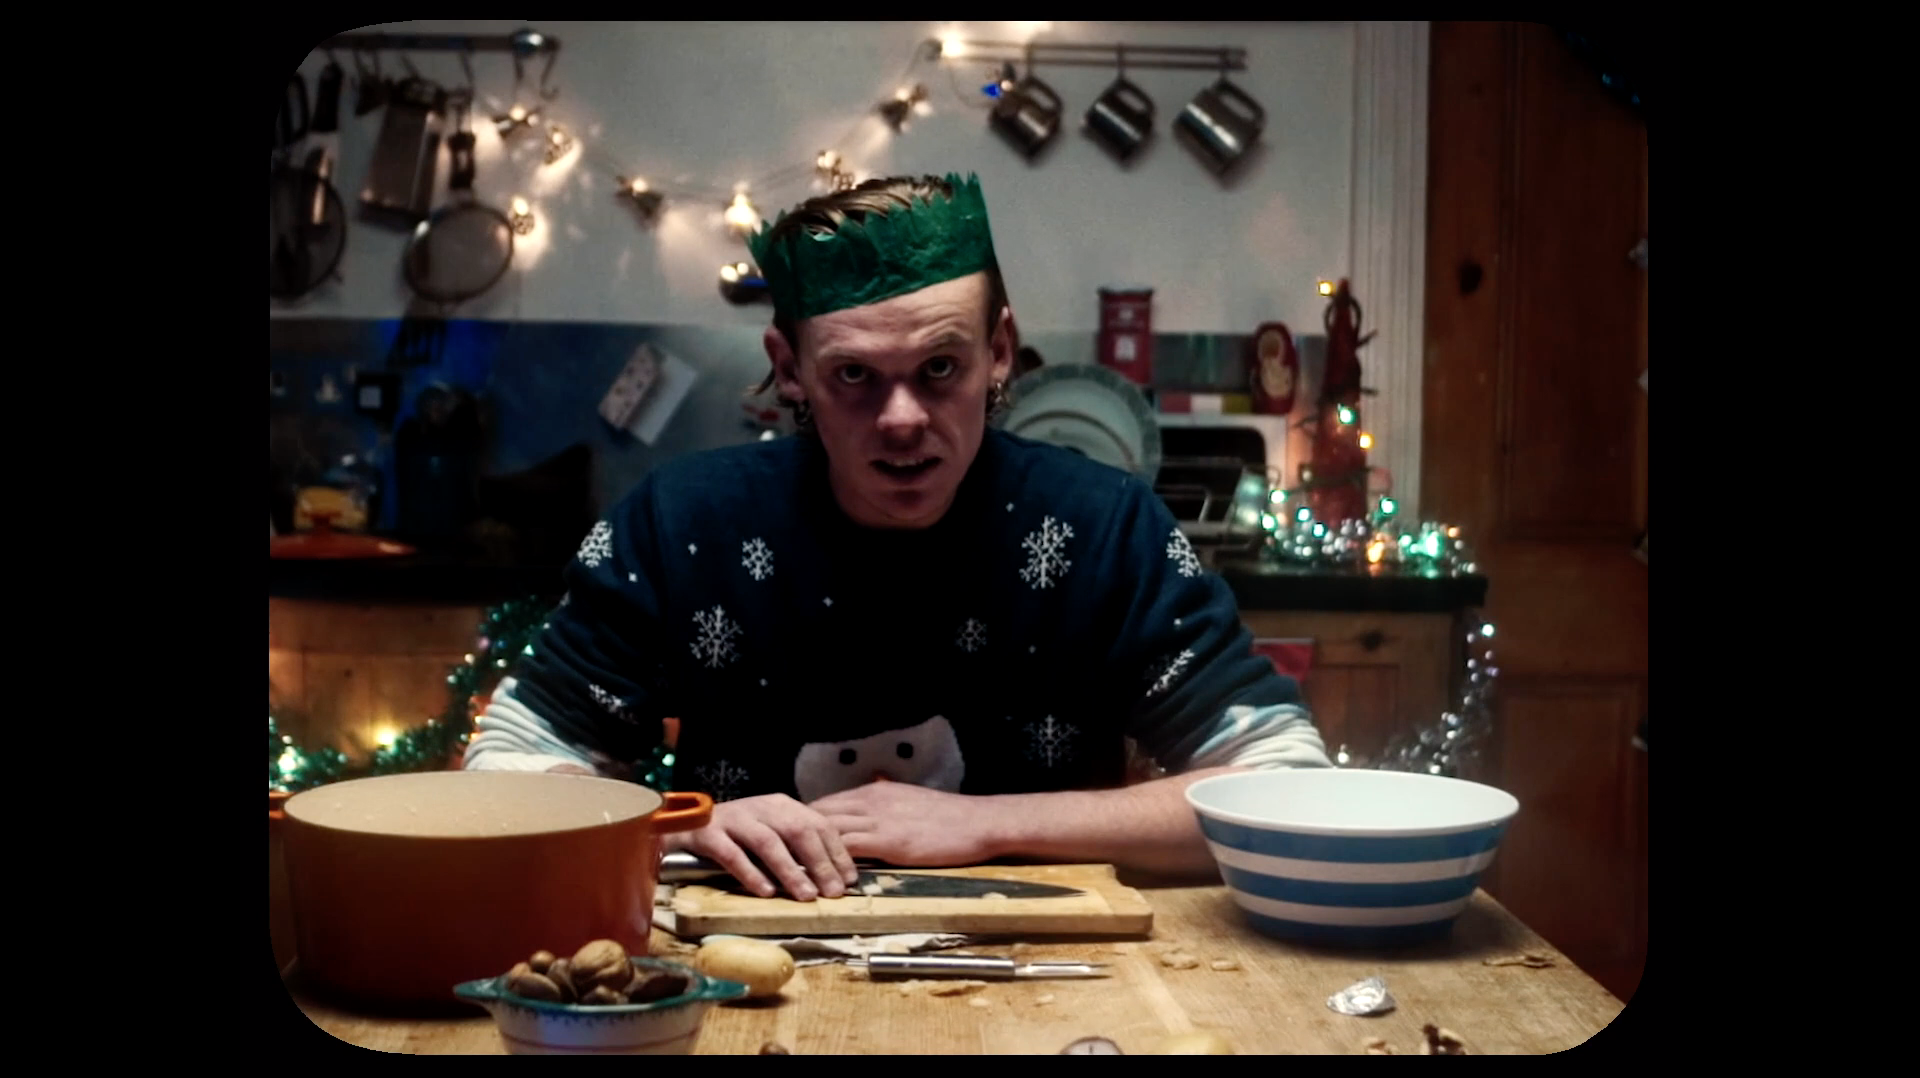 This beautifully sinister Christmas monologue is a tale of Scrabble's dark side